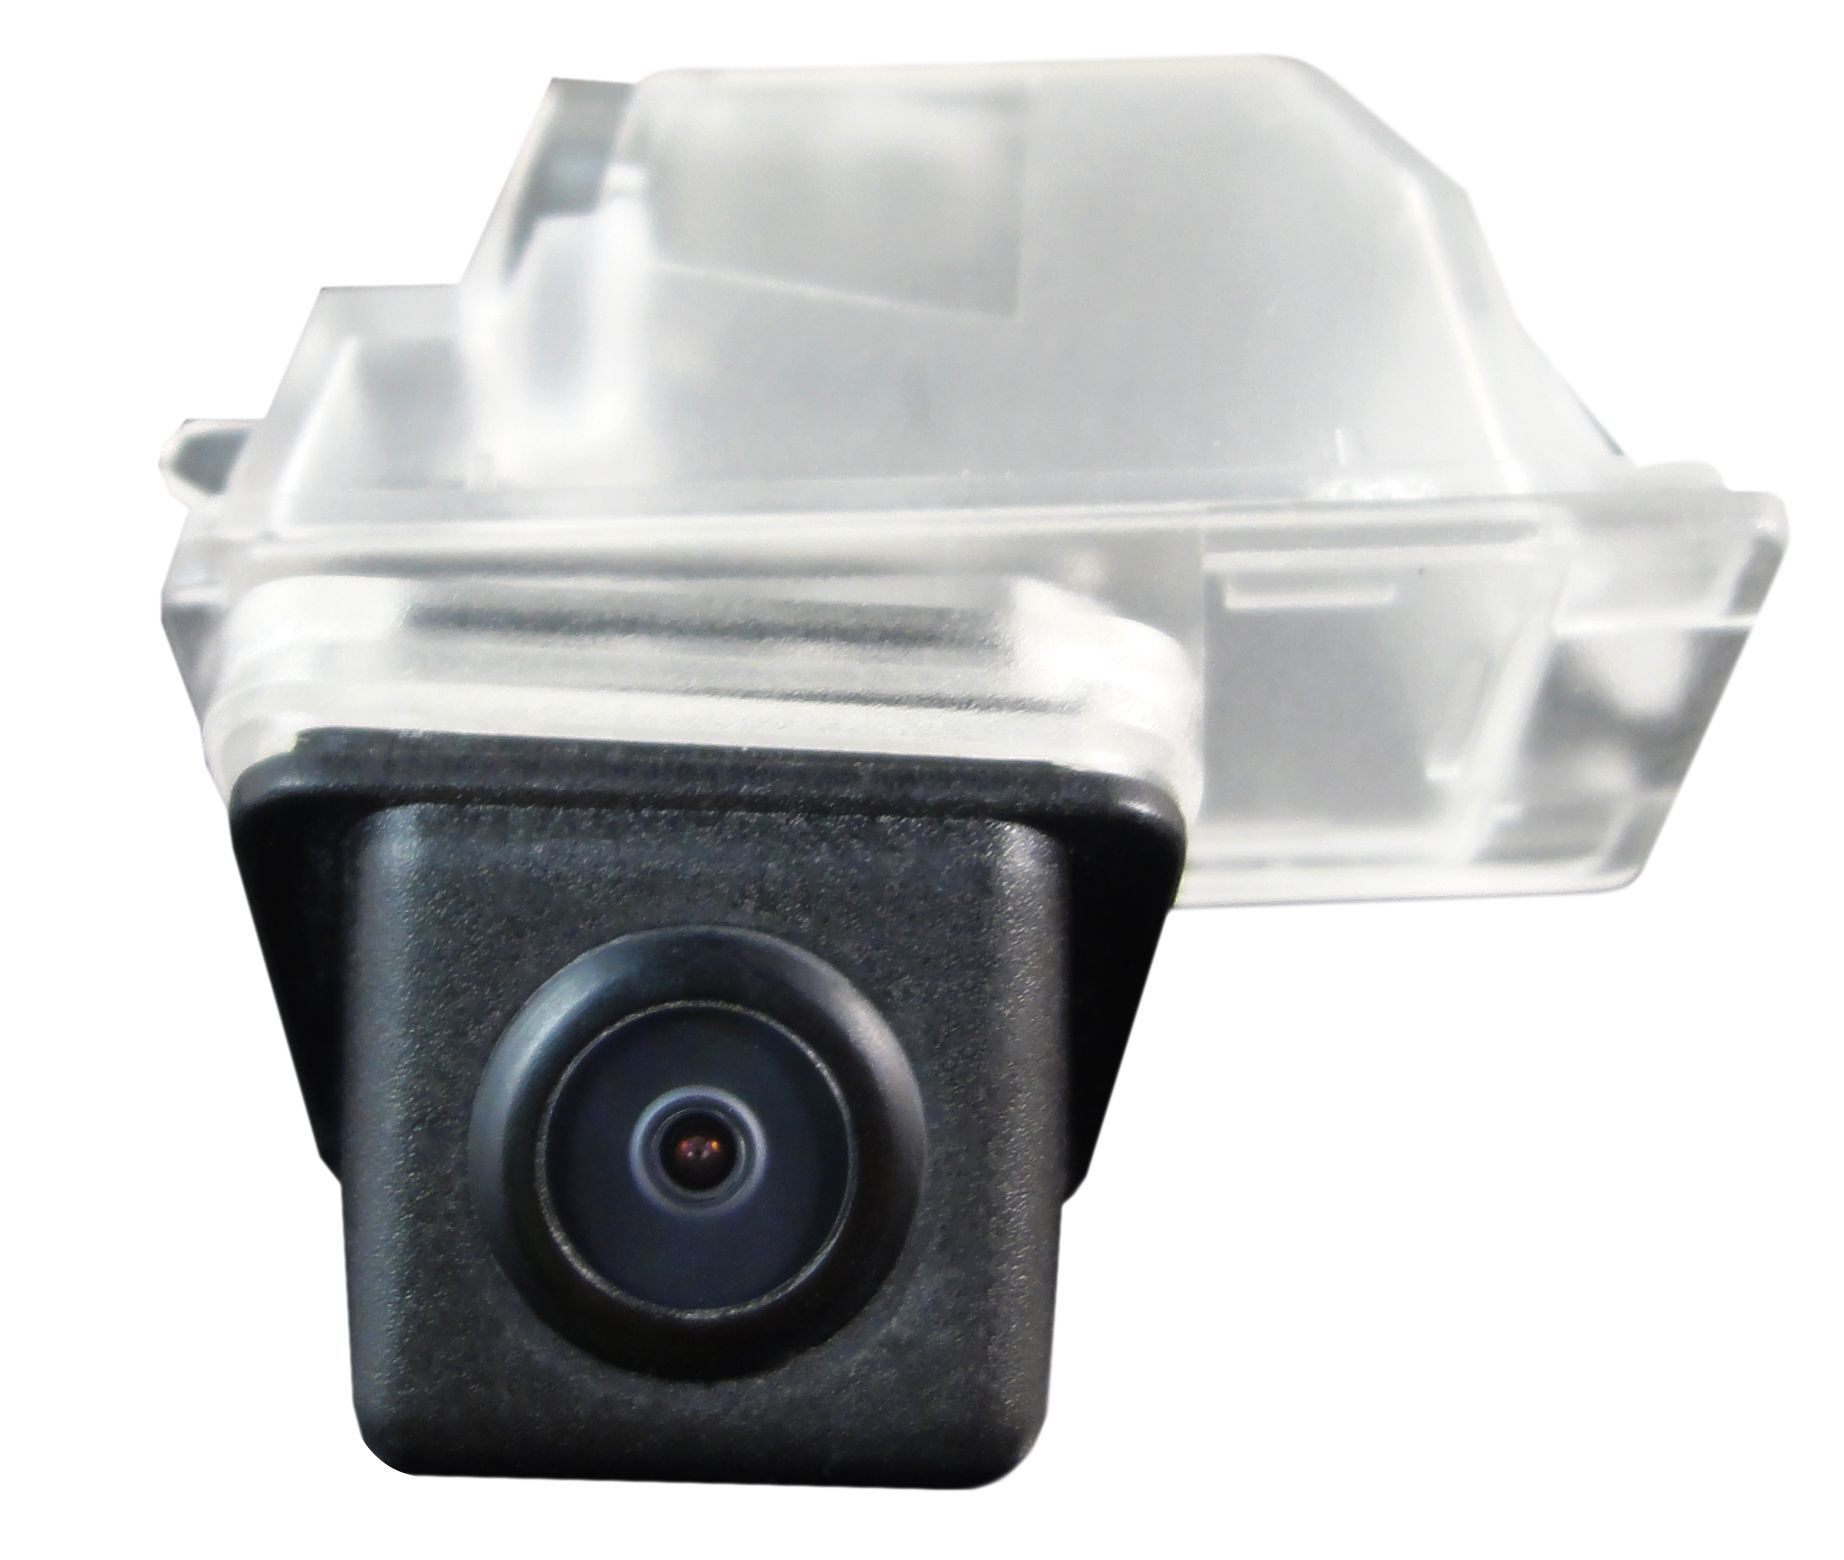 Rearview Camera for Ford Kuga, Mendeo 2014 (CA-927)